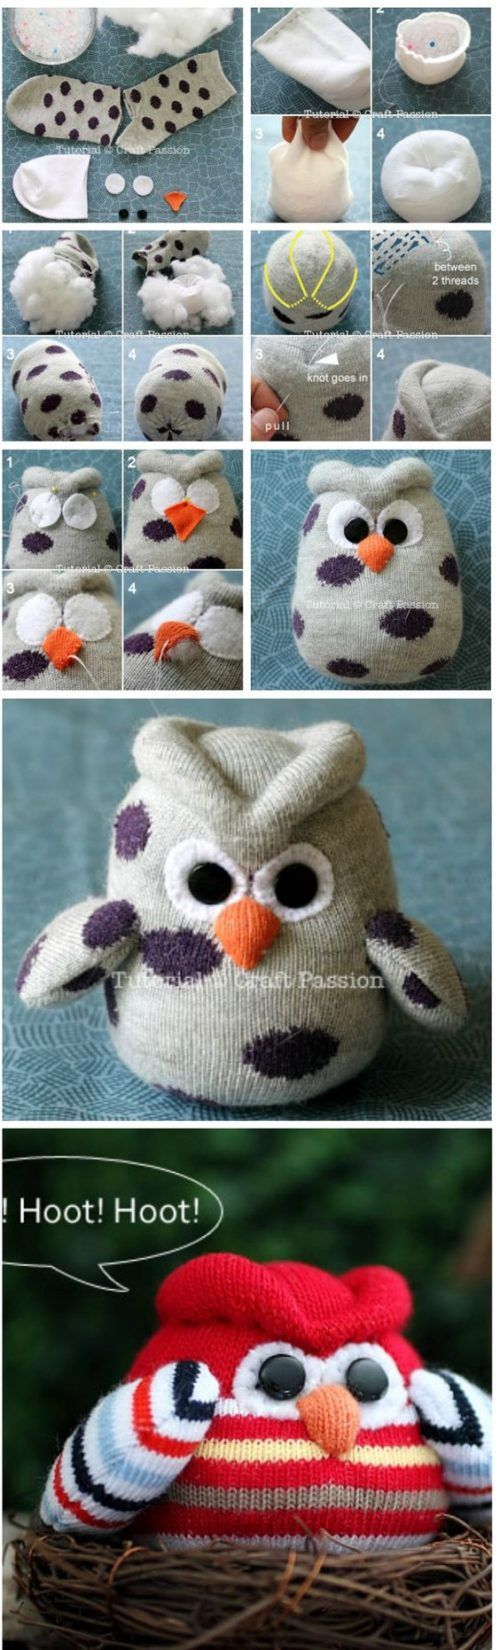 Sock Owl Craft                                                                                                                                                                                 More